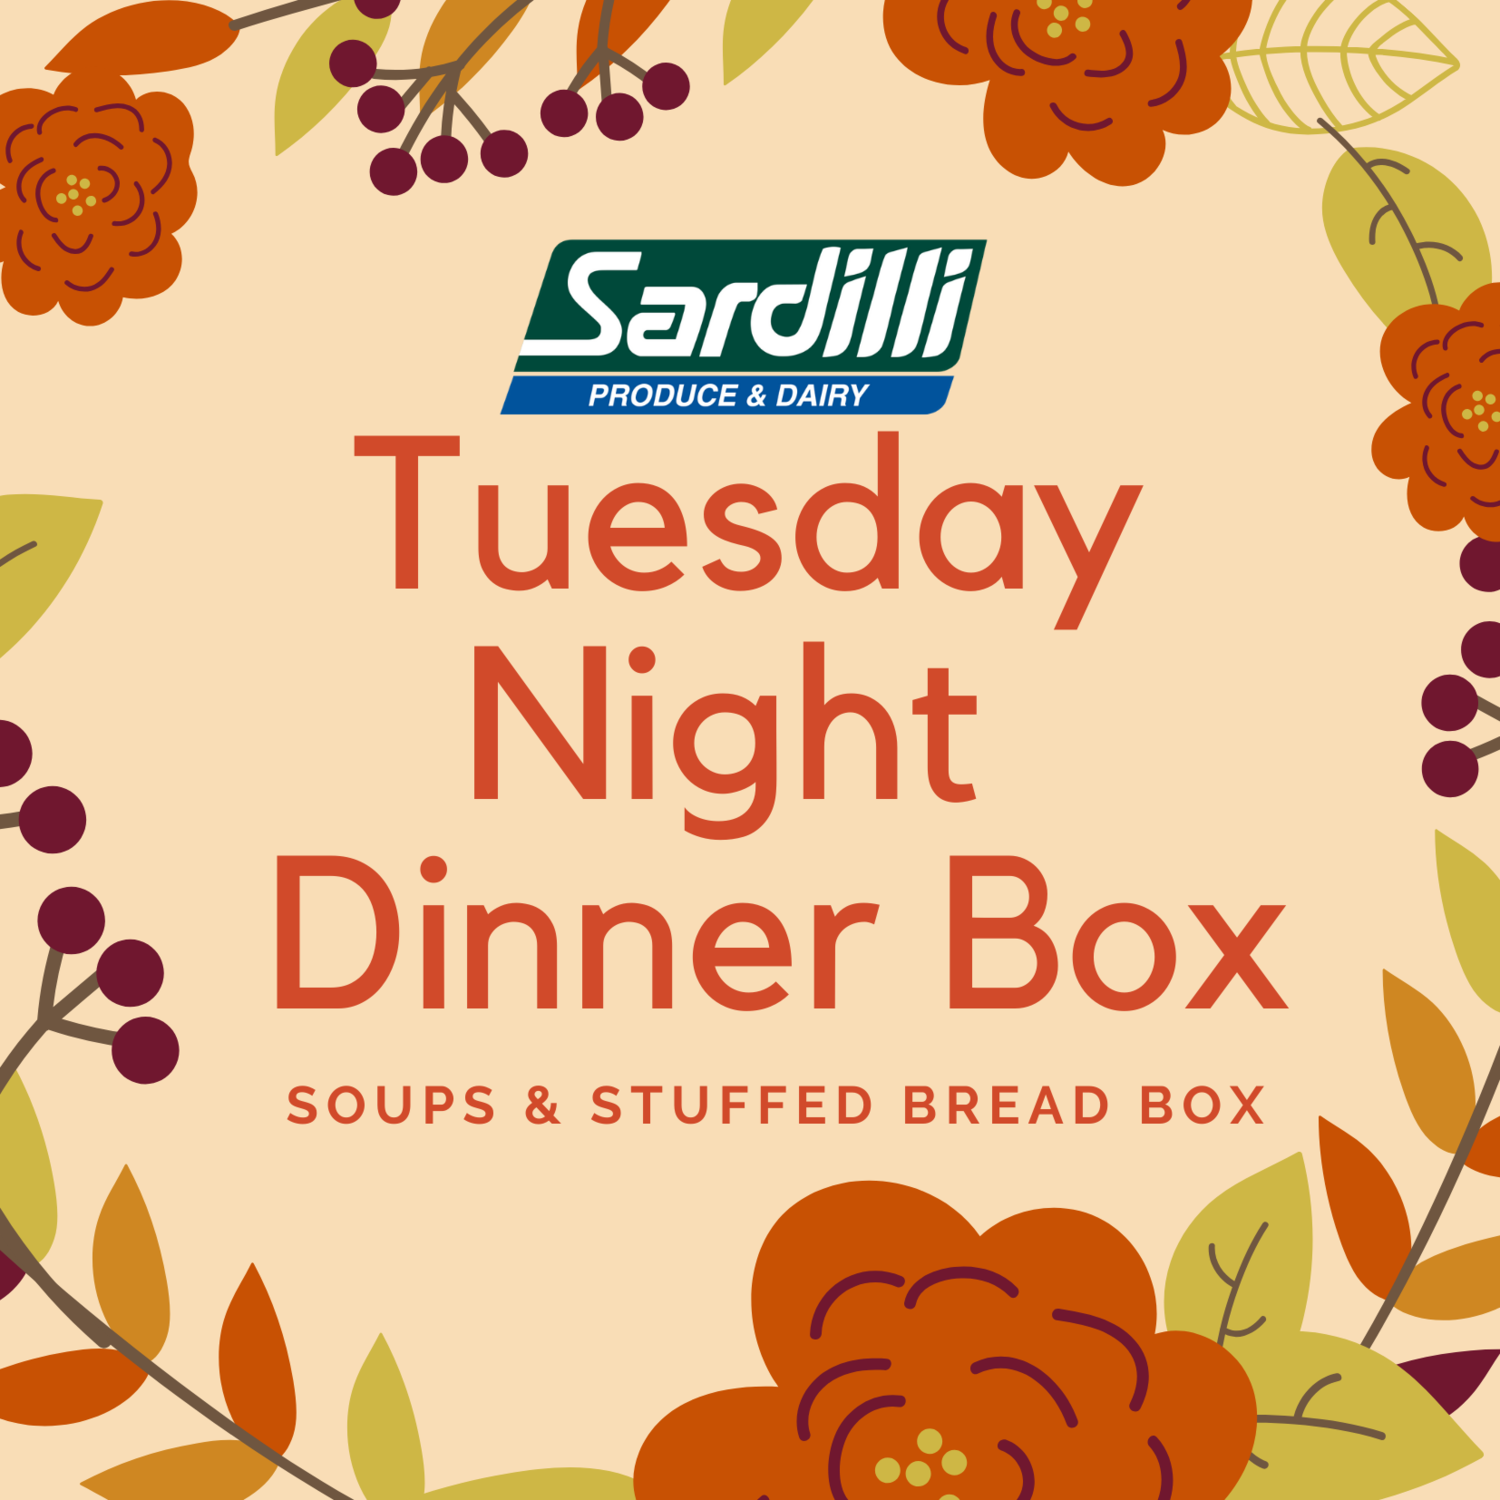 TUESDAY DINNER BOXES - SOUP & STUFFED BREAD BOX